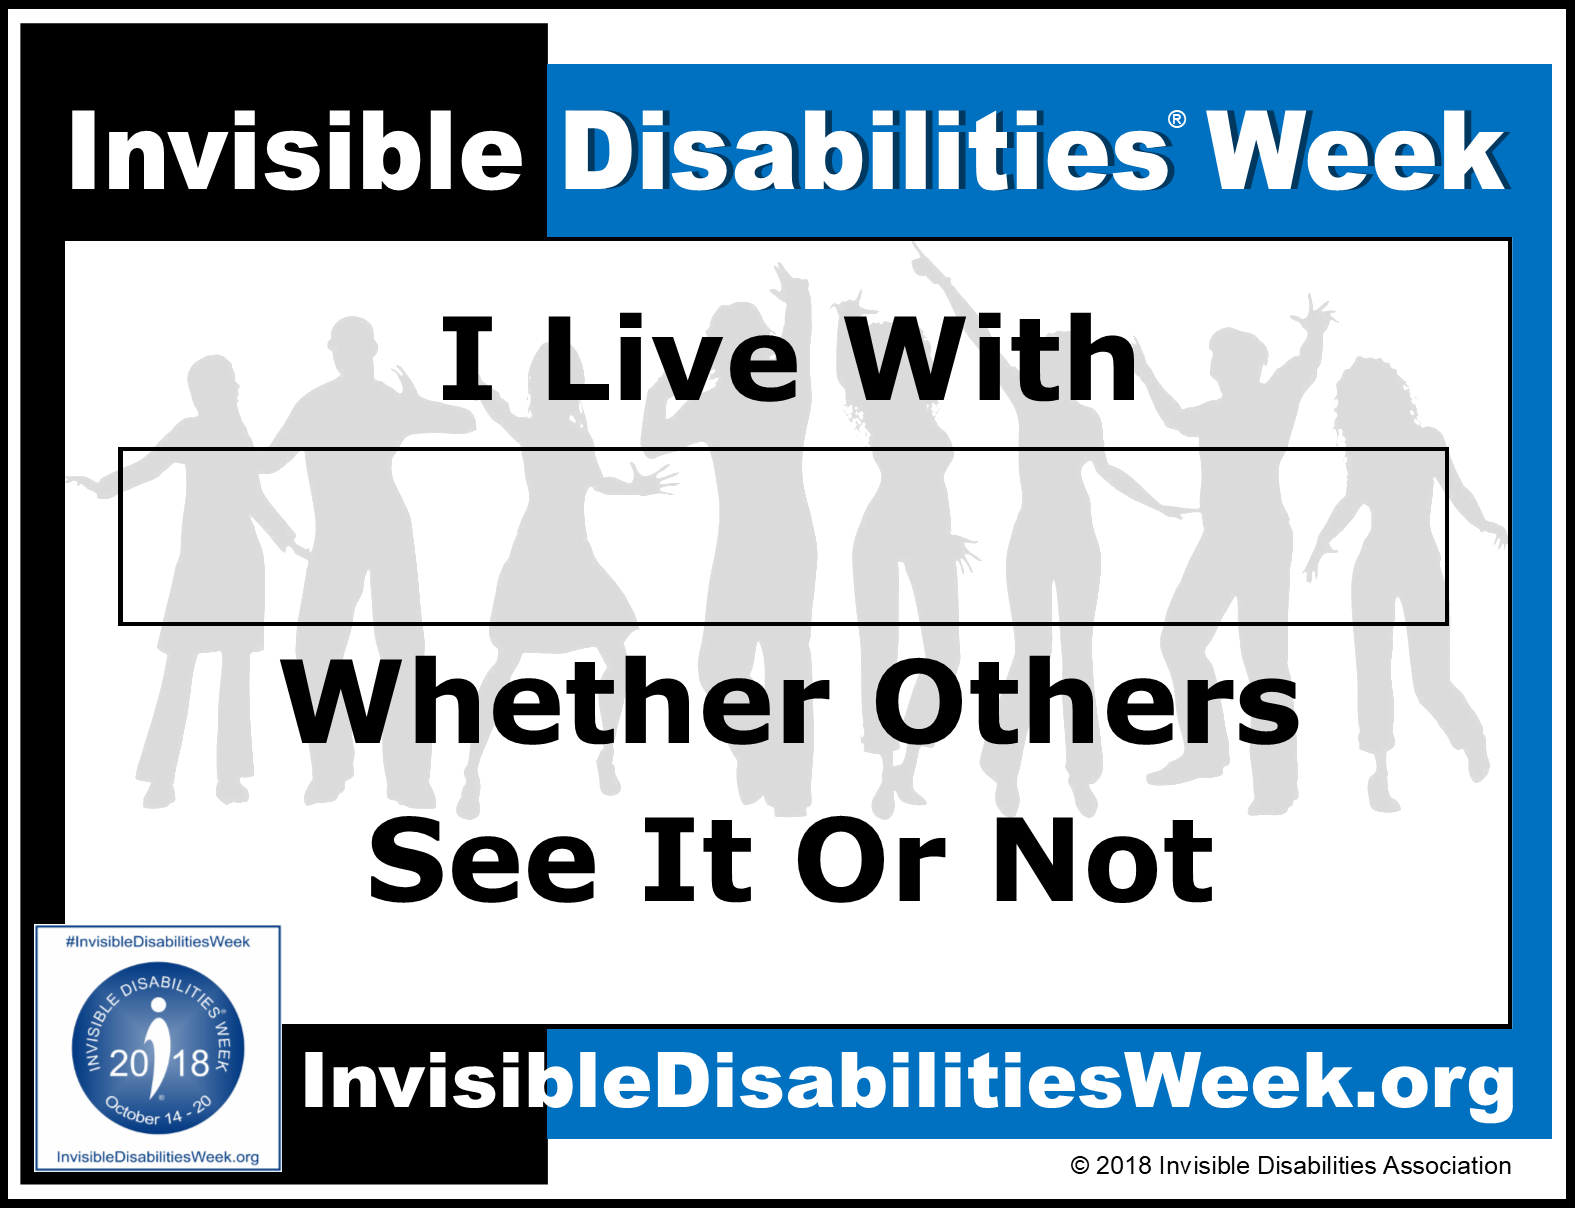 2018 Invisible Disabilities Week Whether Others See It Sign